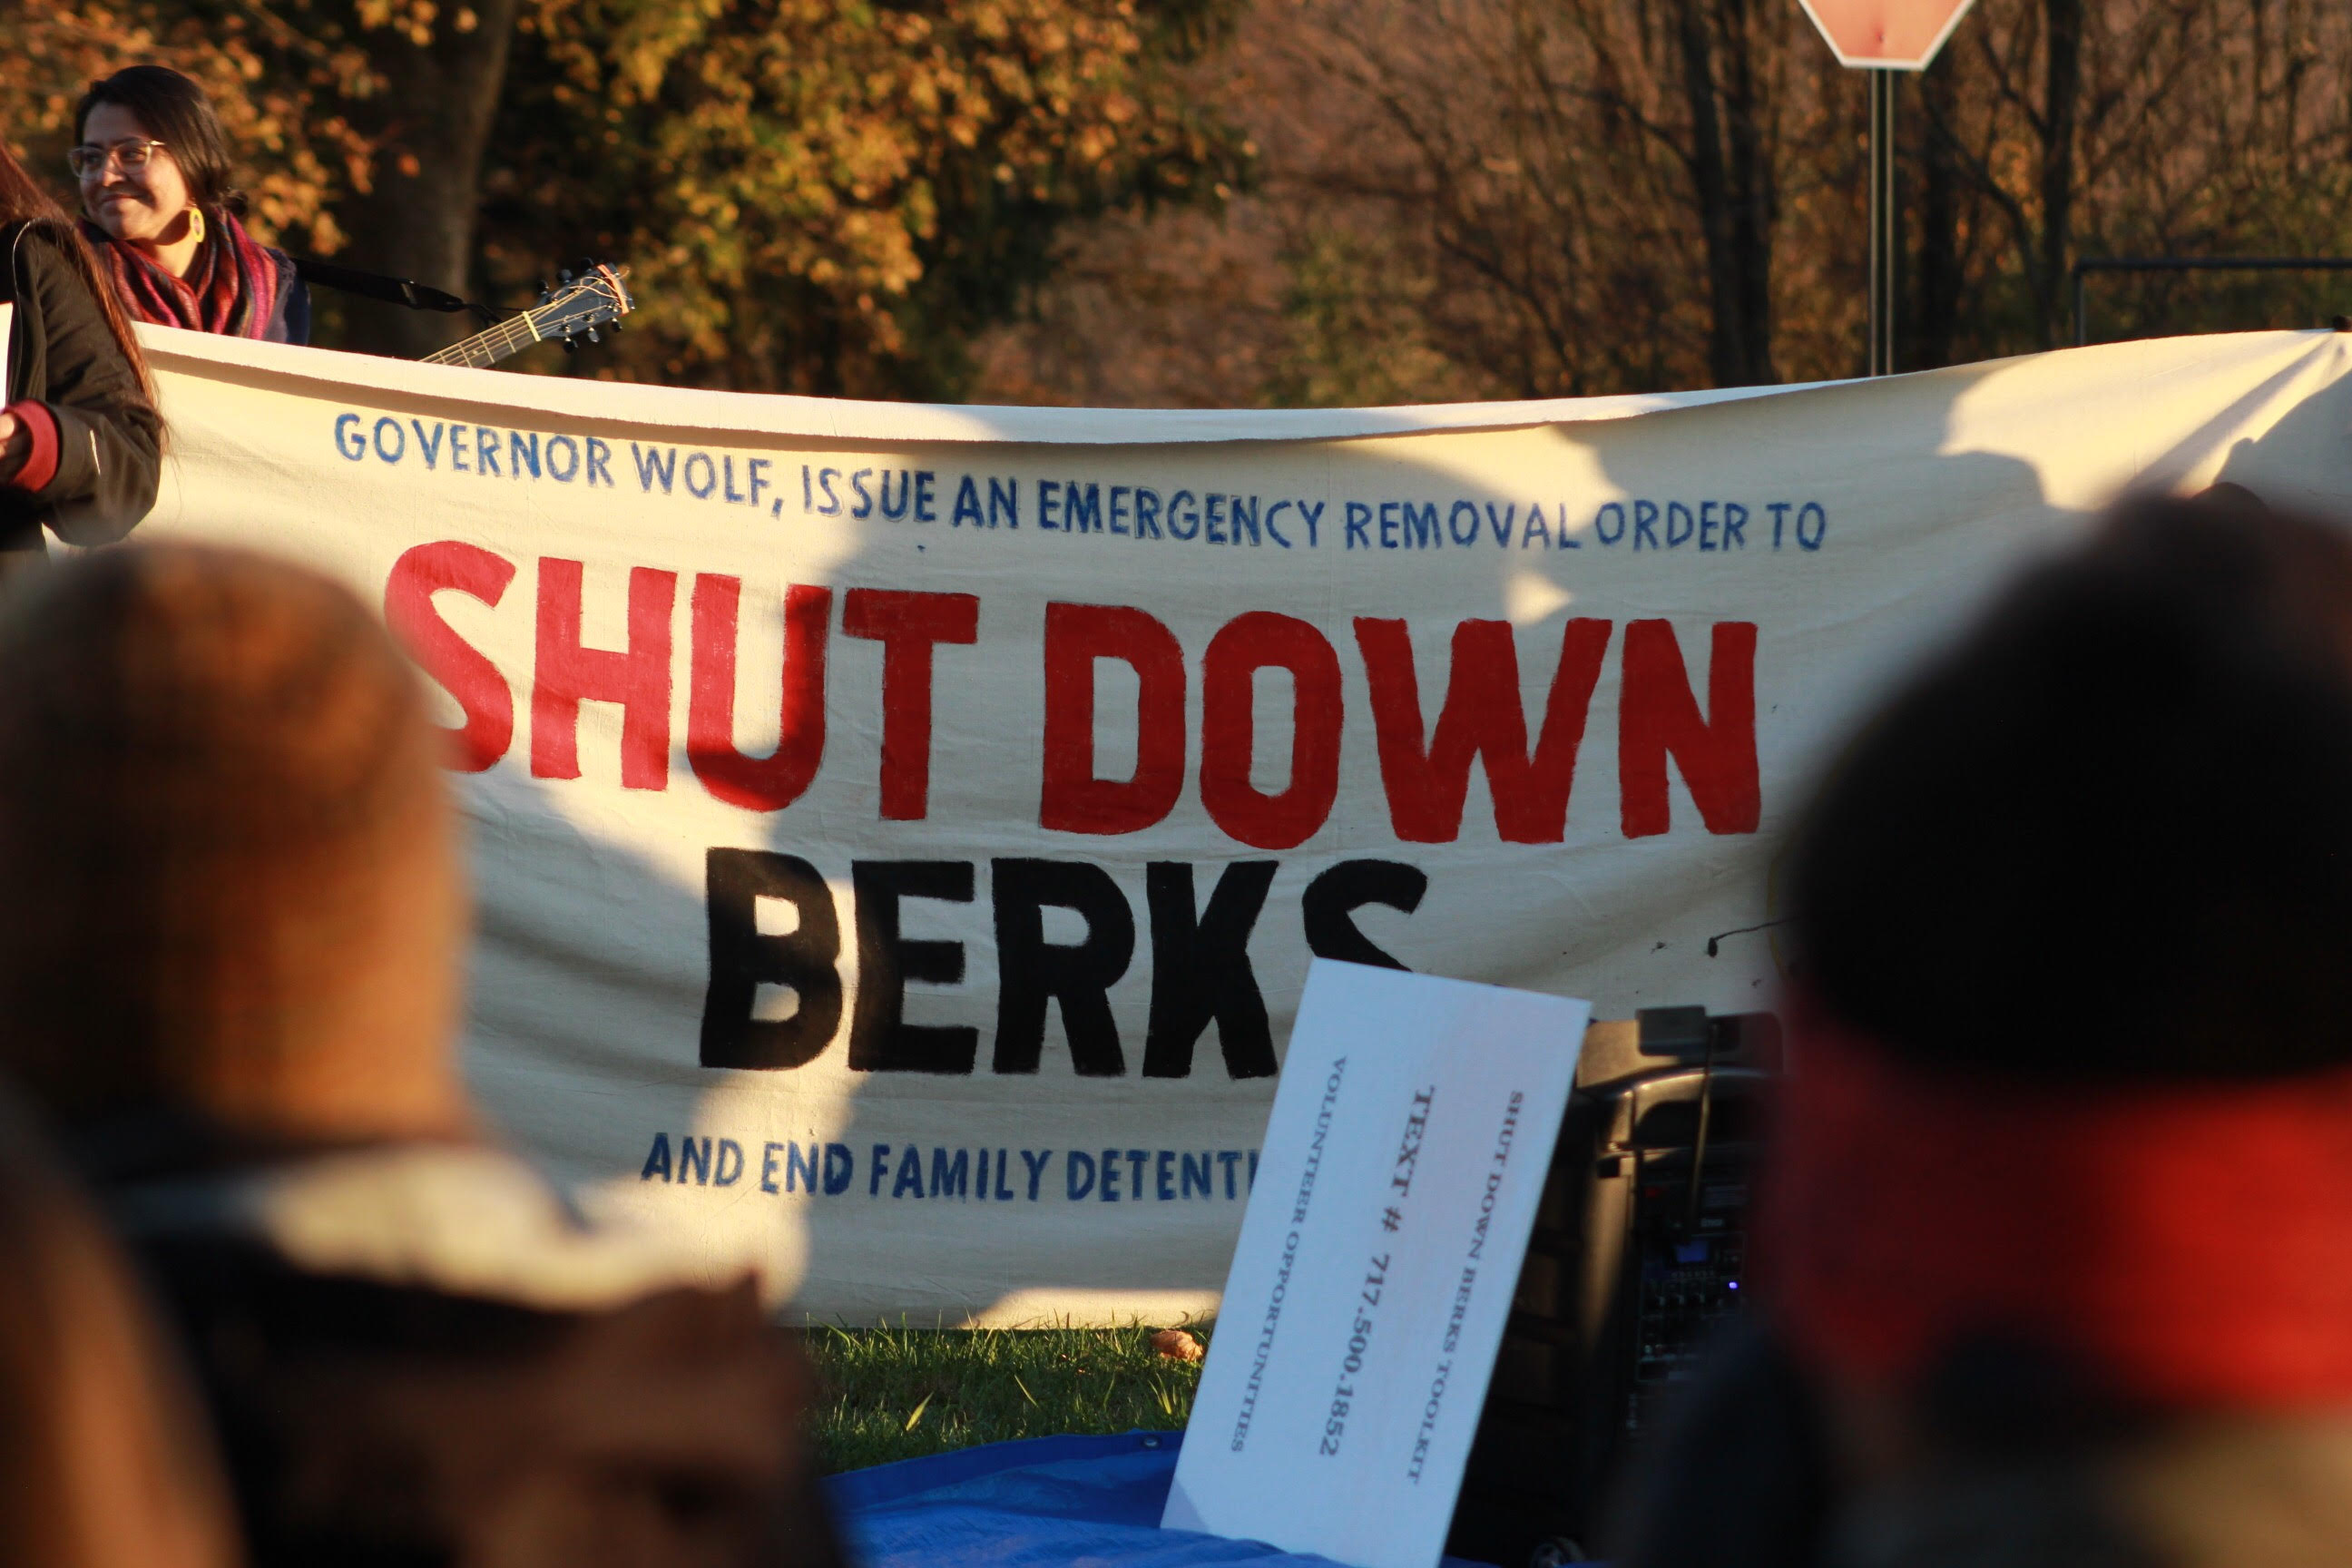 Berks County family detention center remains open despite